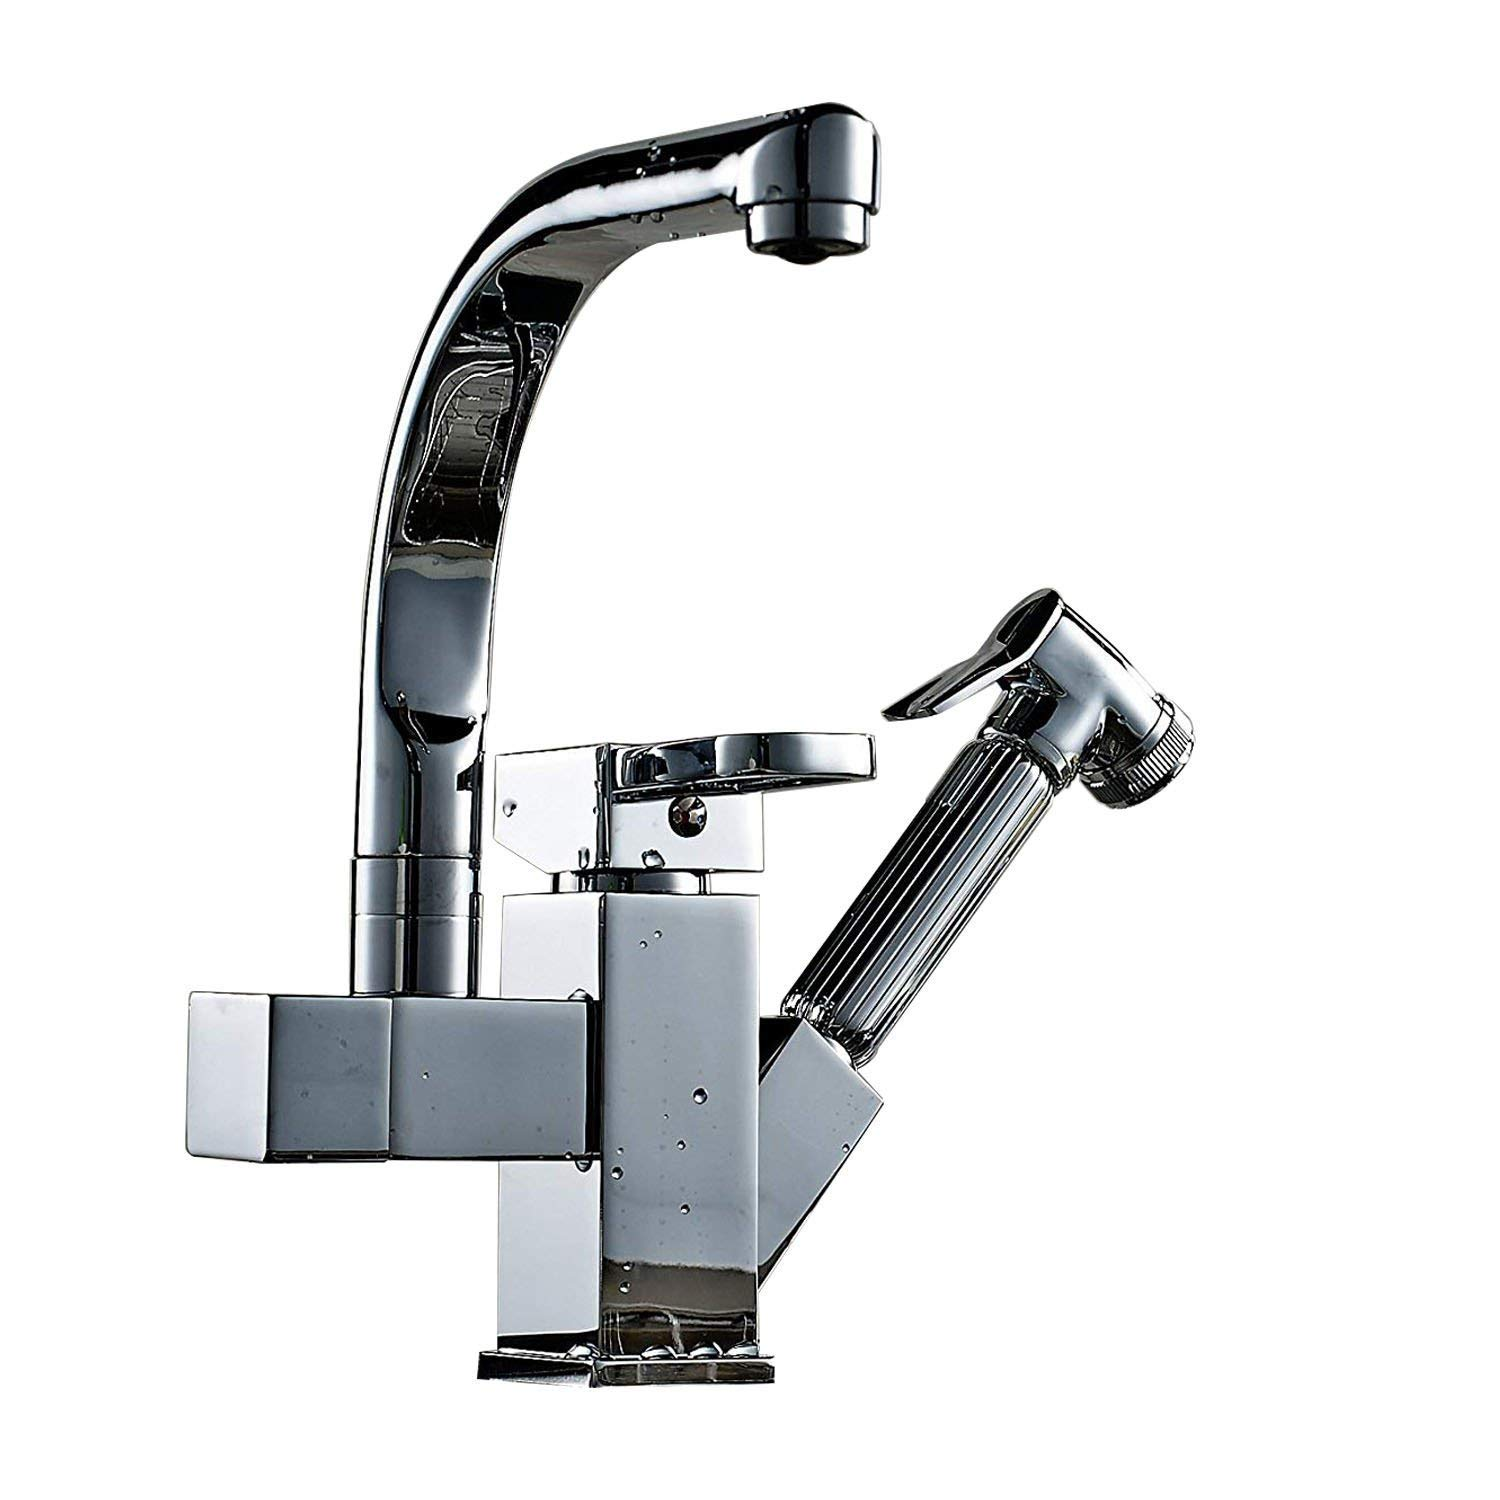 INCHANT Commercial Single Hole Single Handle Swivel Spout Pull Down Pull Out Sink Kitchen Mixer Tap, Polished Chrome Two Functions Mixer Tap Kitchen sink Faucet